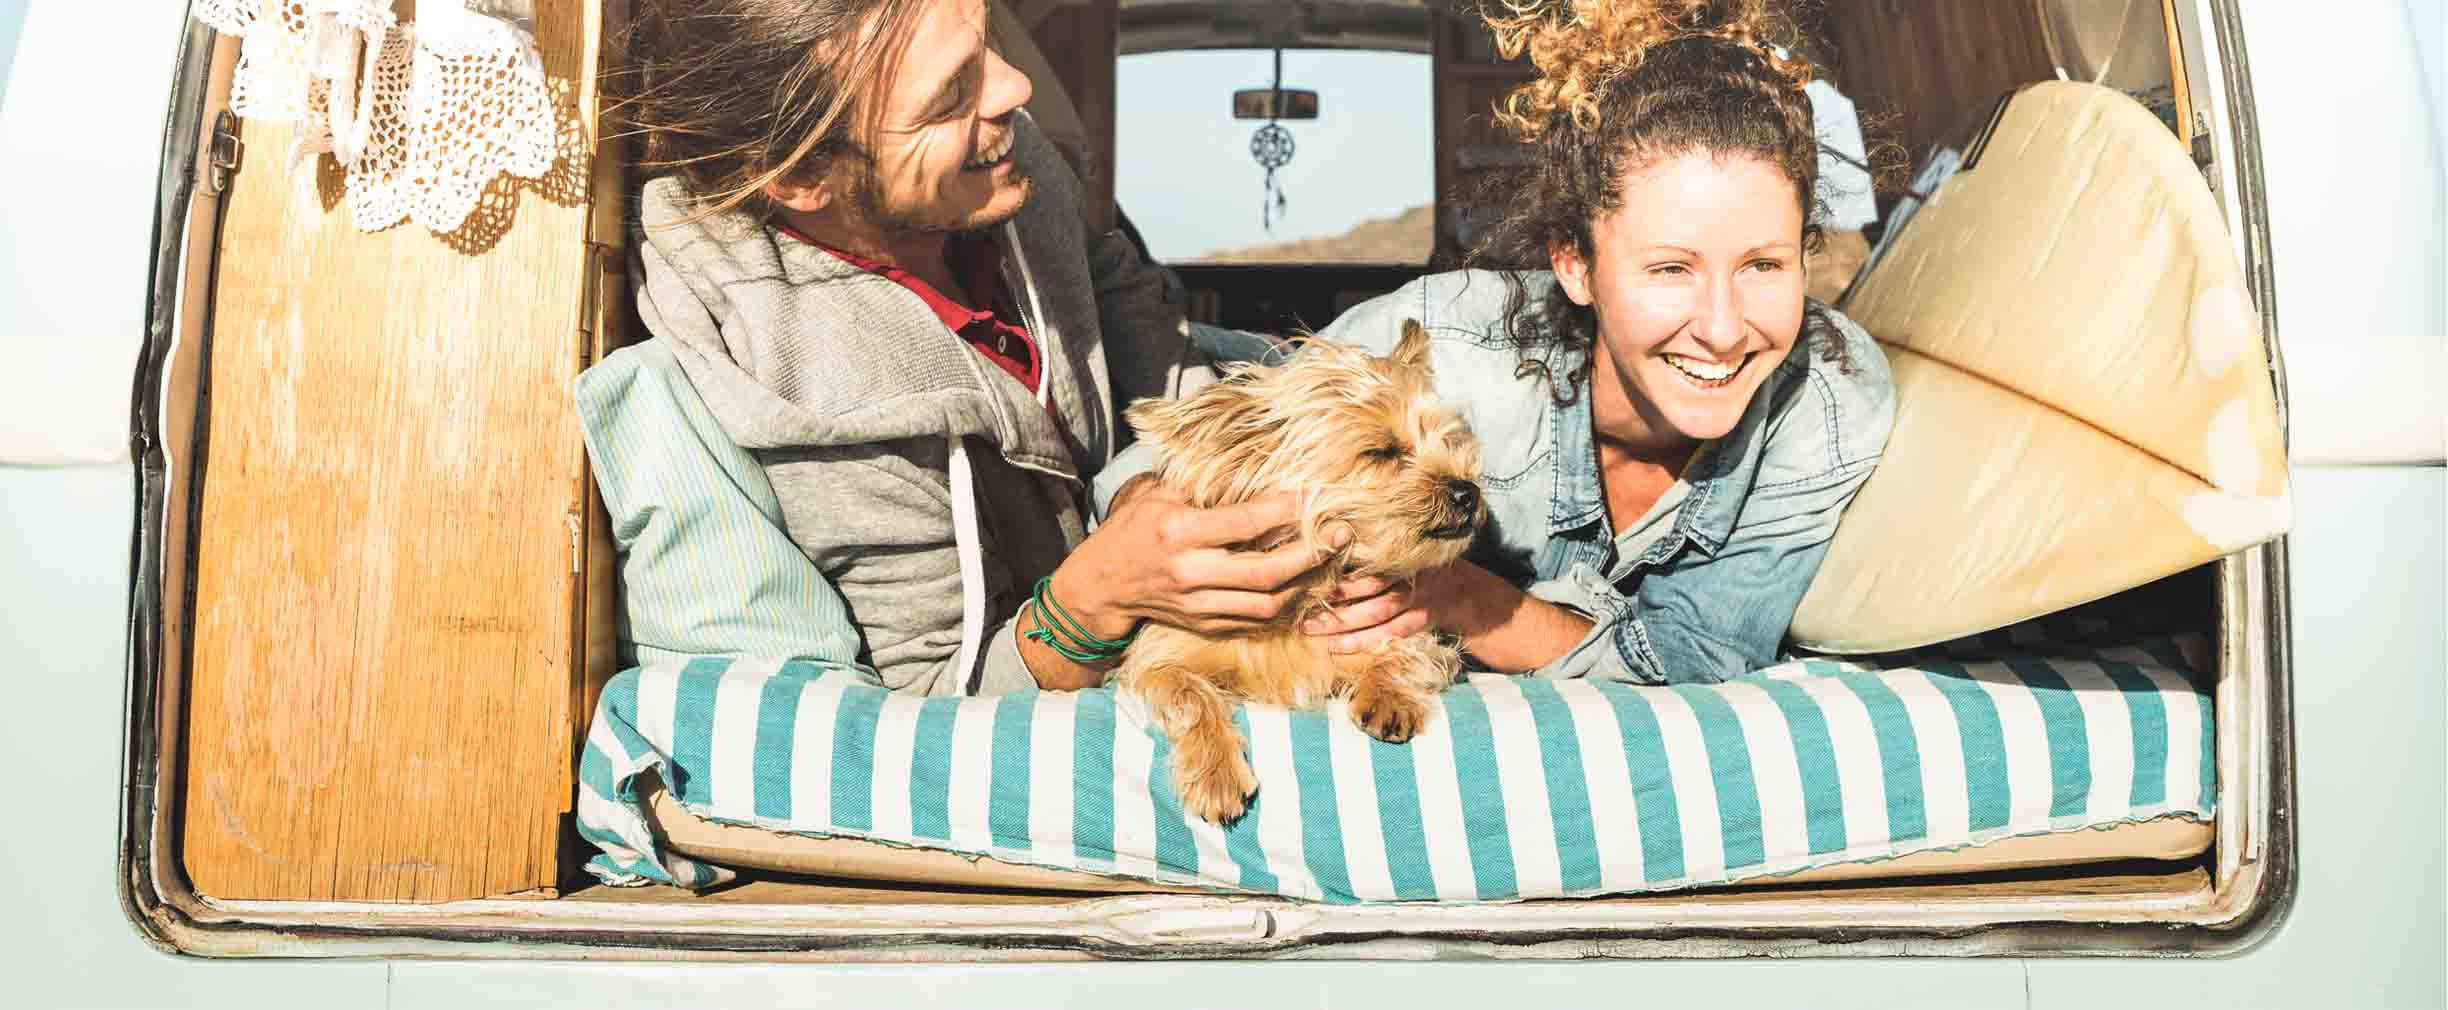 two women and a dog traveling in a van